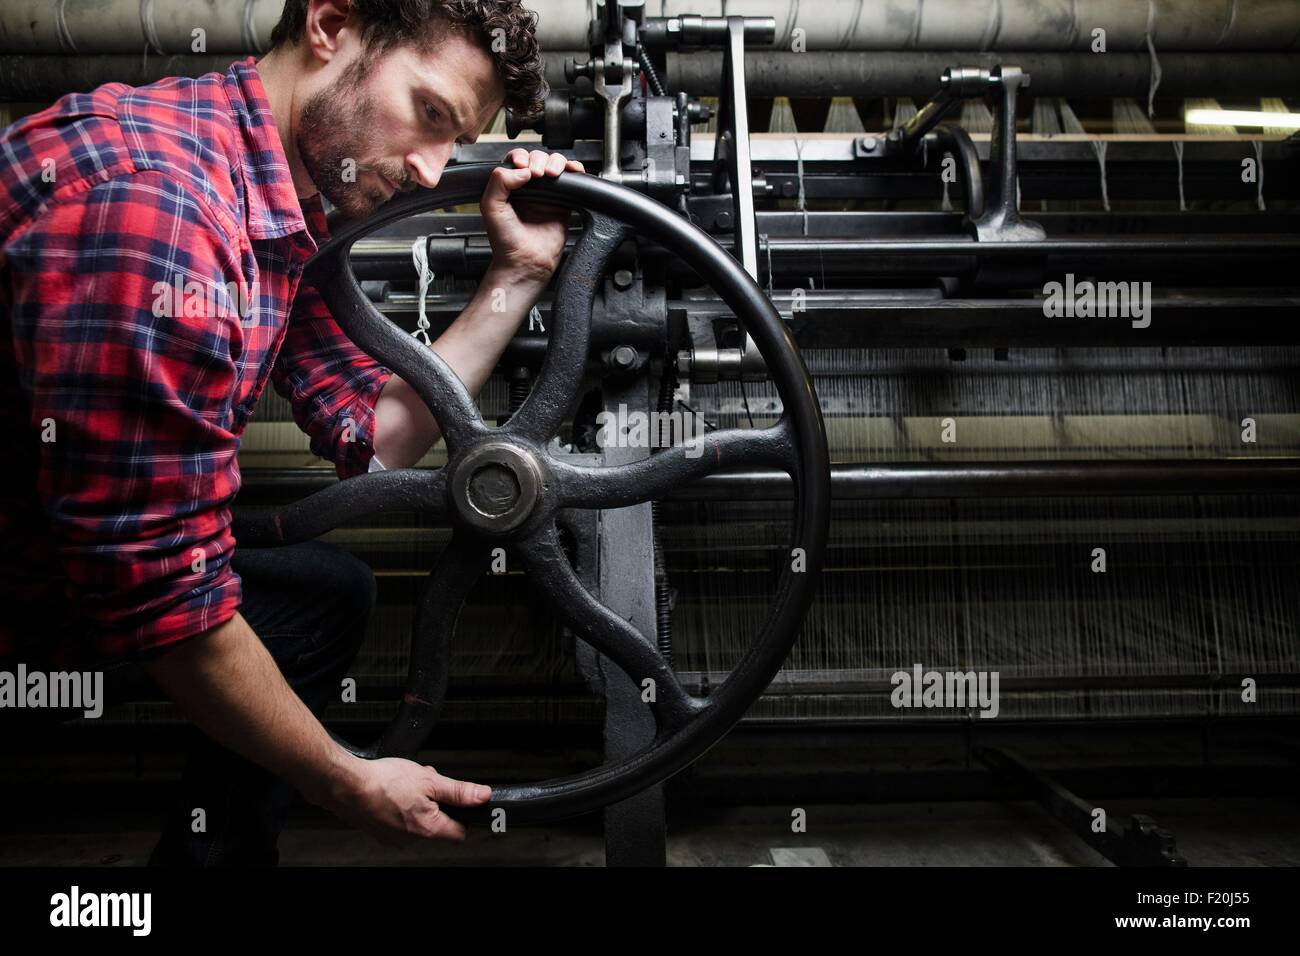 Male weaver turning wheel on old weaving machine in textile mill - Stock Image